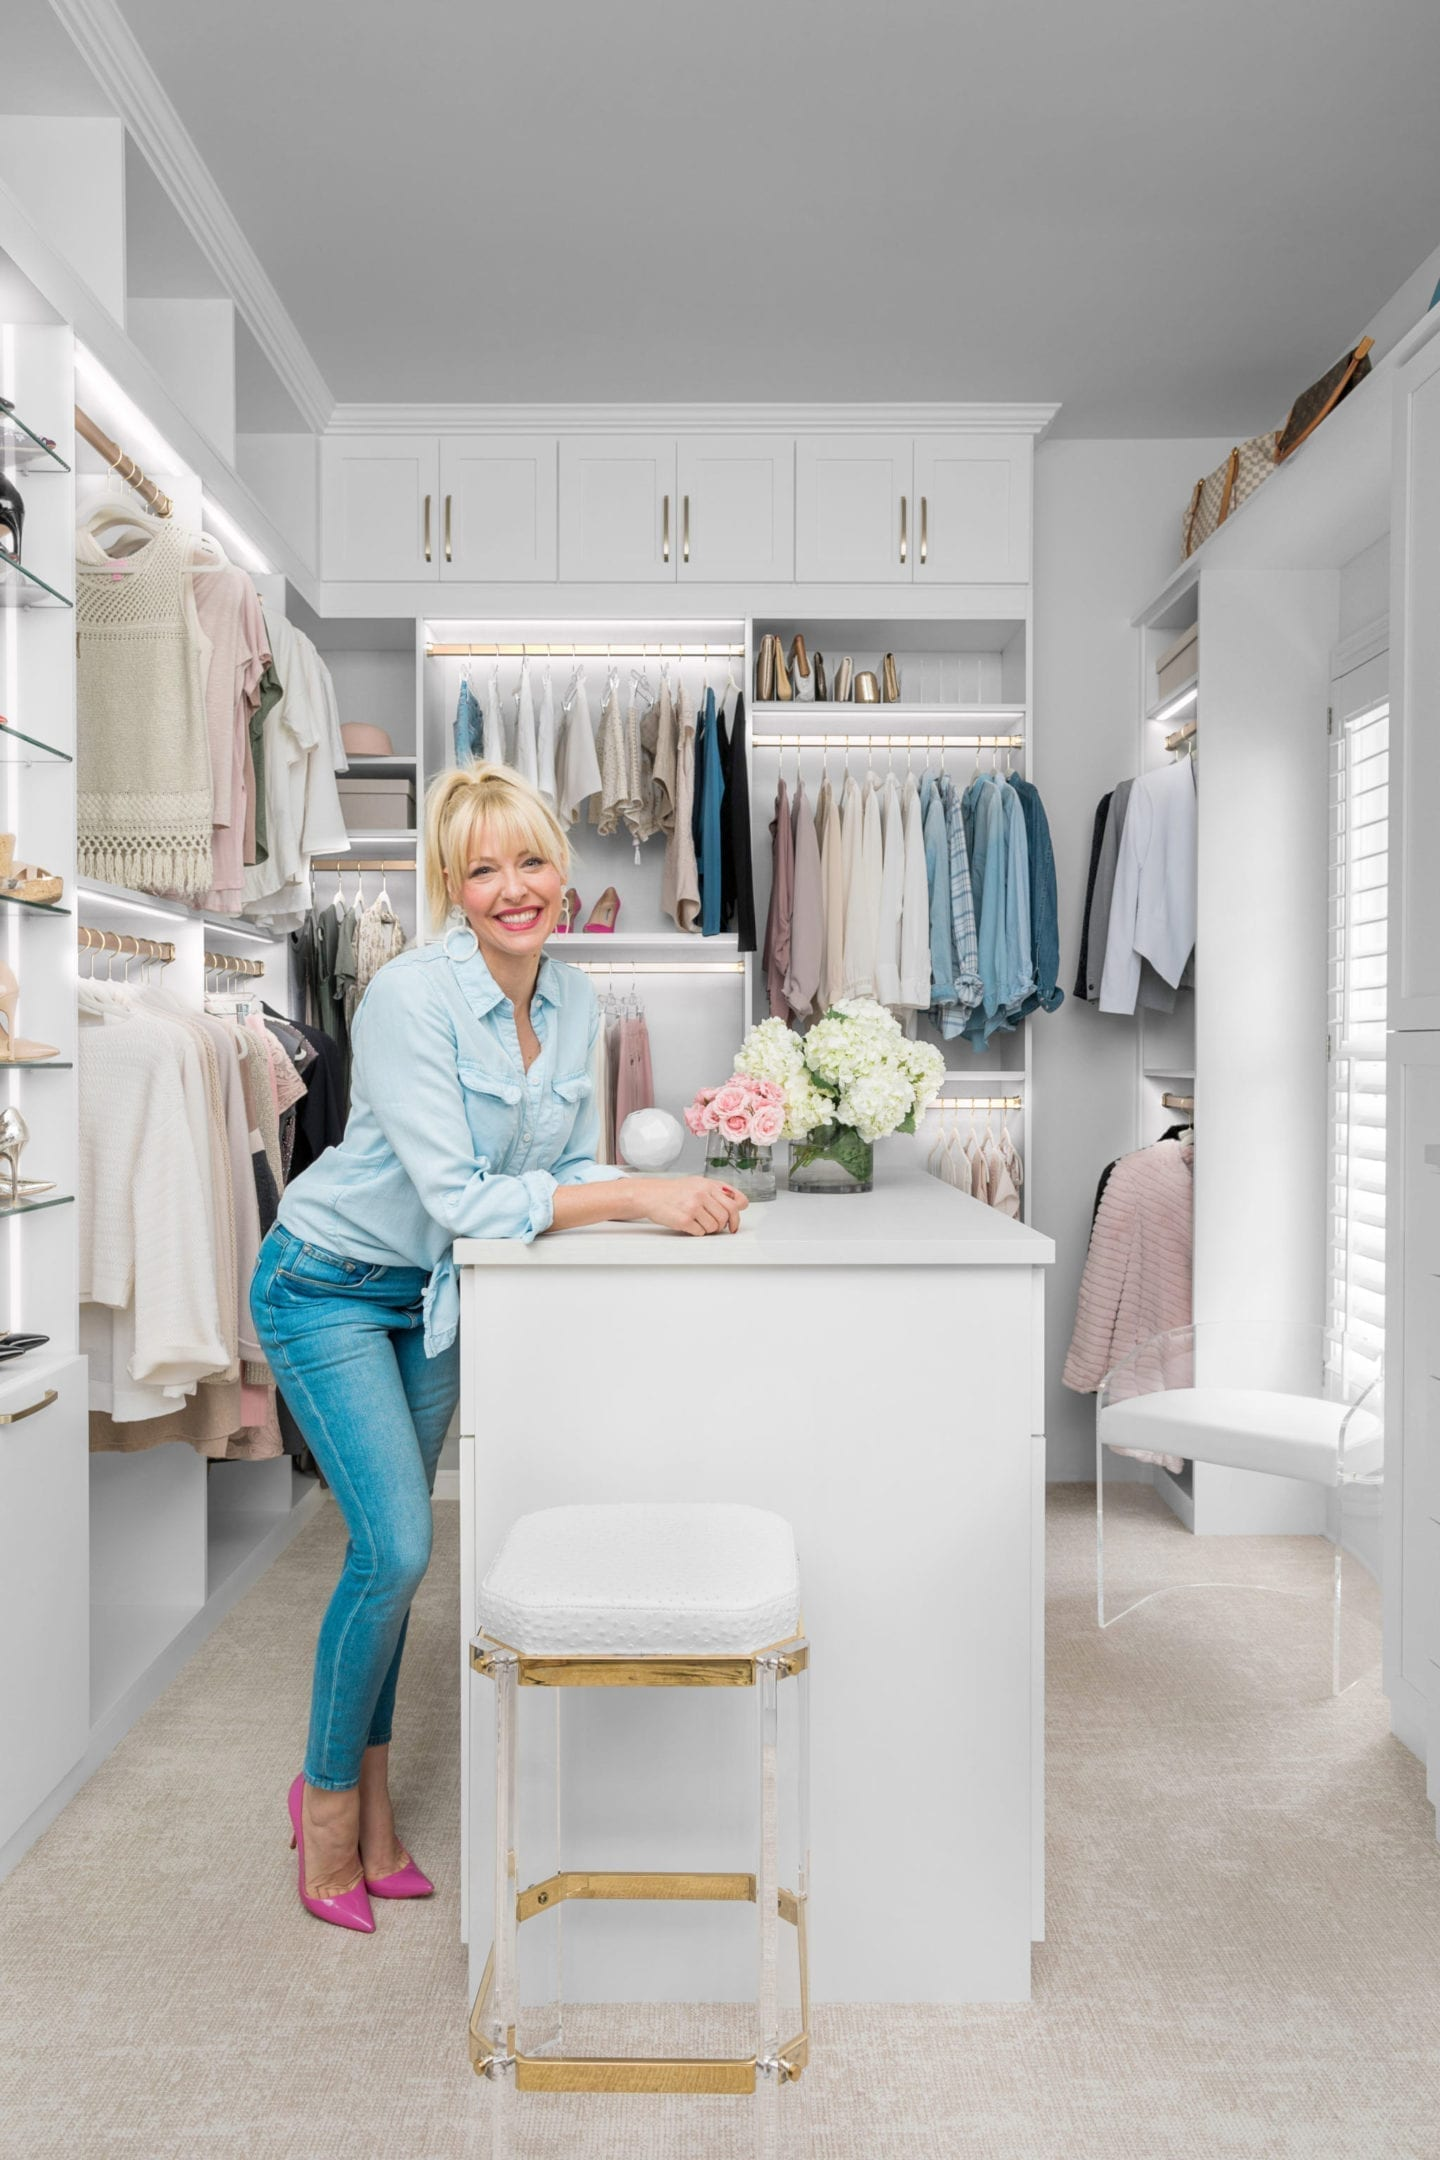 Kelly Page the home blogger behind BlueGrayGal stands in her newly remodel luxury closet with LED lighting created by California Closets.